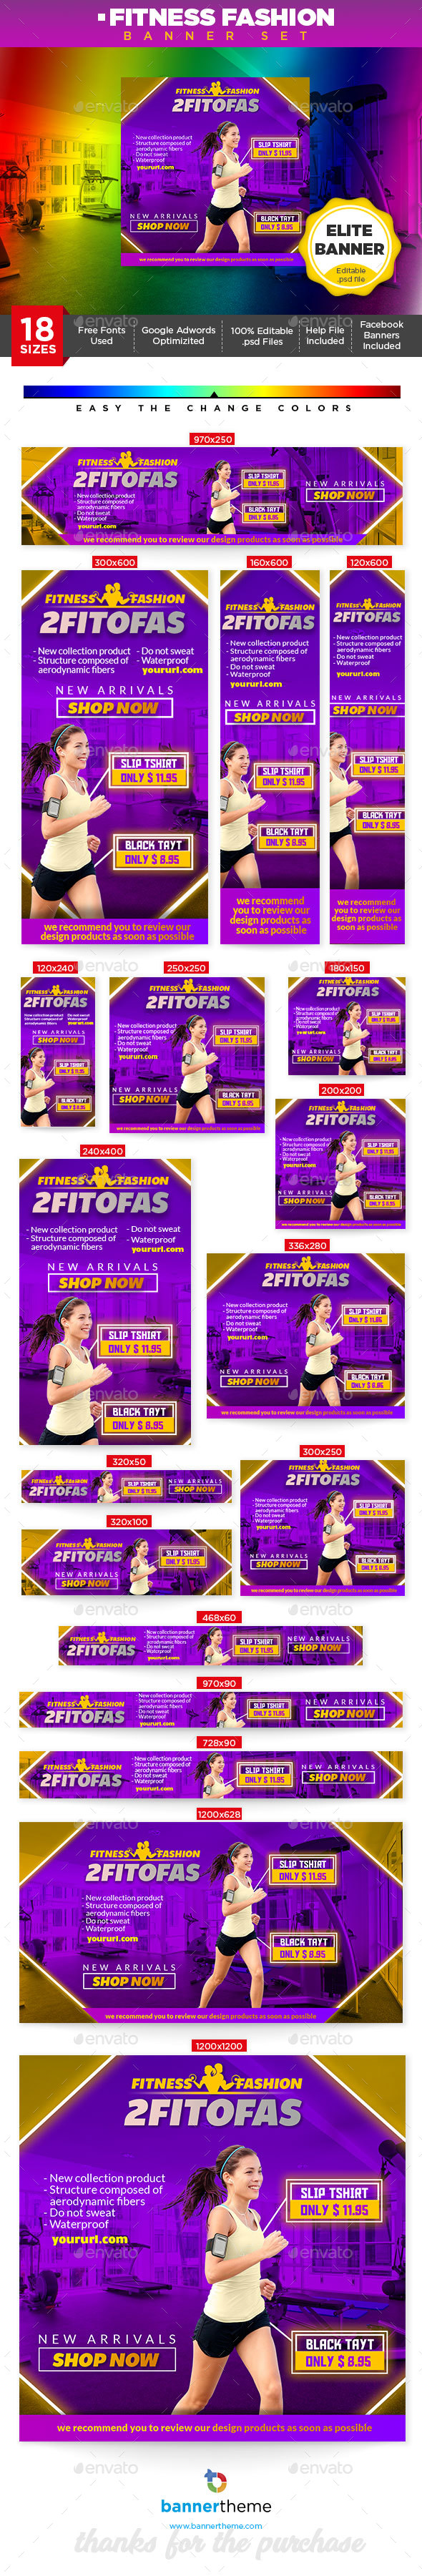 Fitness Fashion Banner - Banners & Ads Web Elements